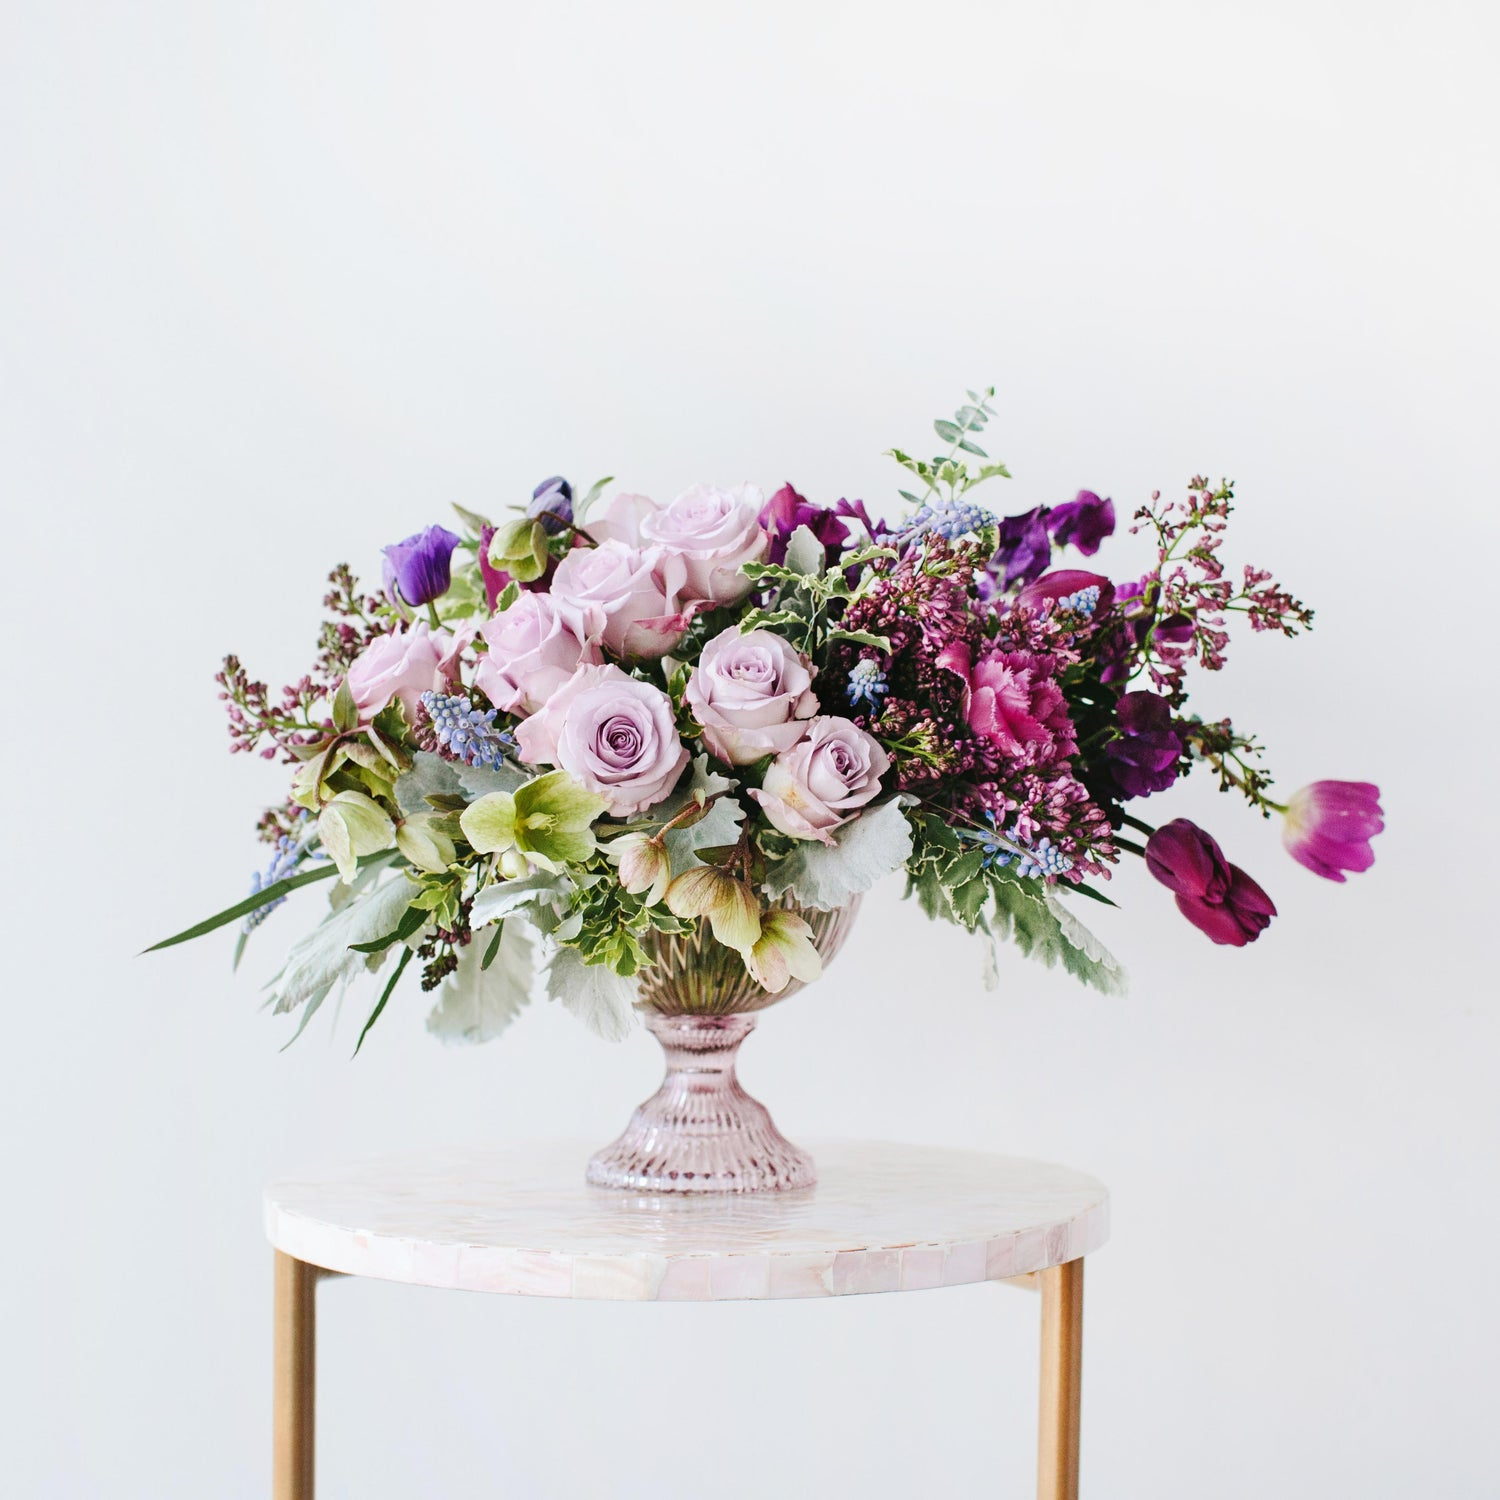 Wildflora Los Angeles florist Ventura Blvd Studio City flower bouquet floral arrangement wedding event special occasion shop store Eucalyptus green foliage dusty miller aubergine eggplant purple lilac lavender rose pale light hellebore sweet pea glass urn pink table